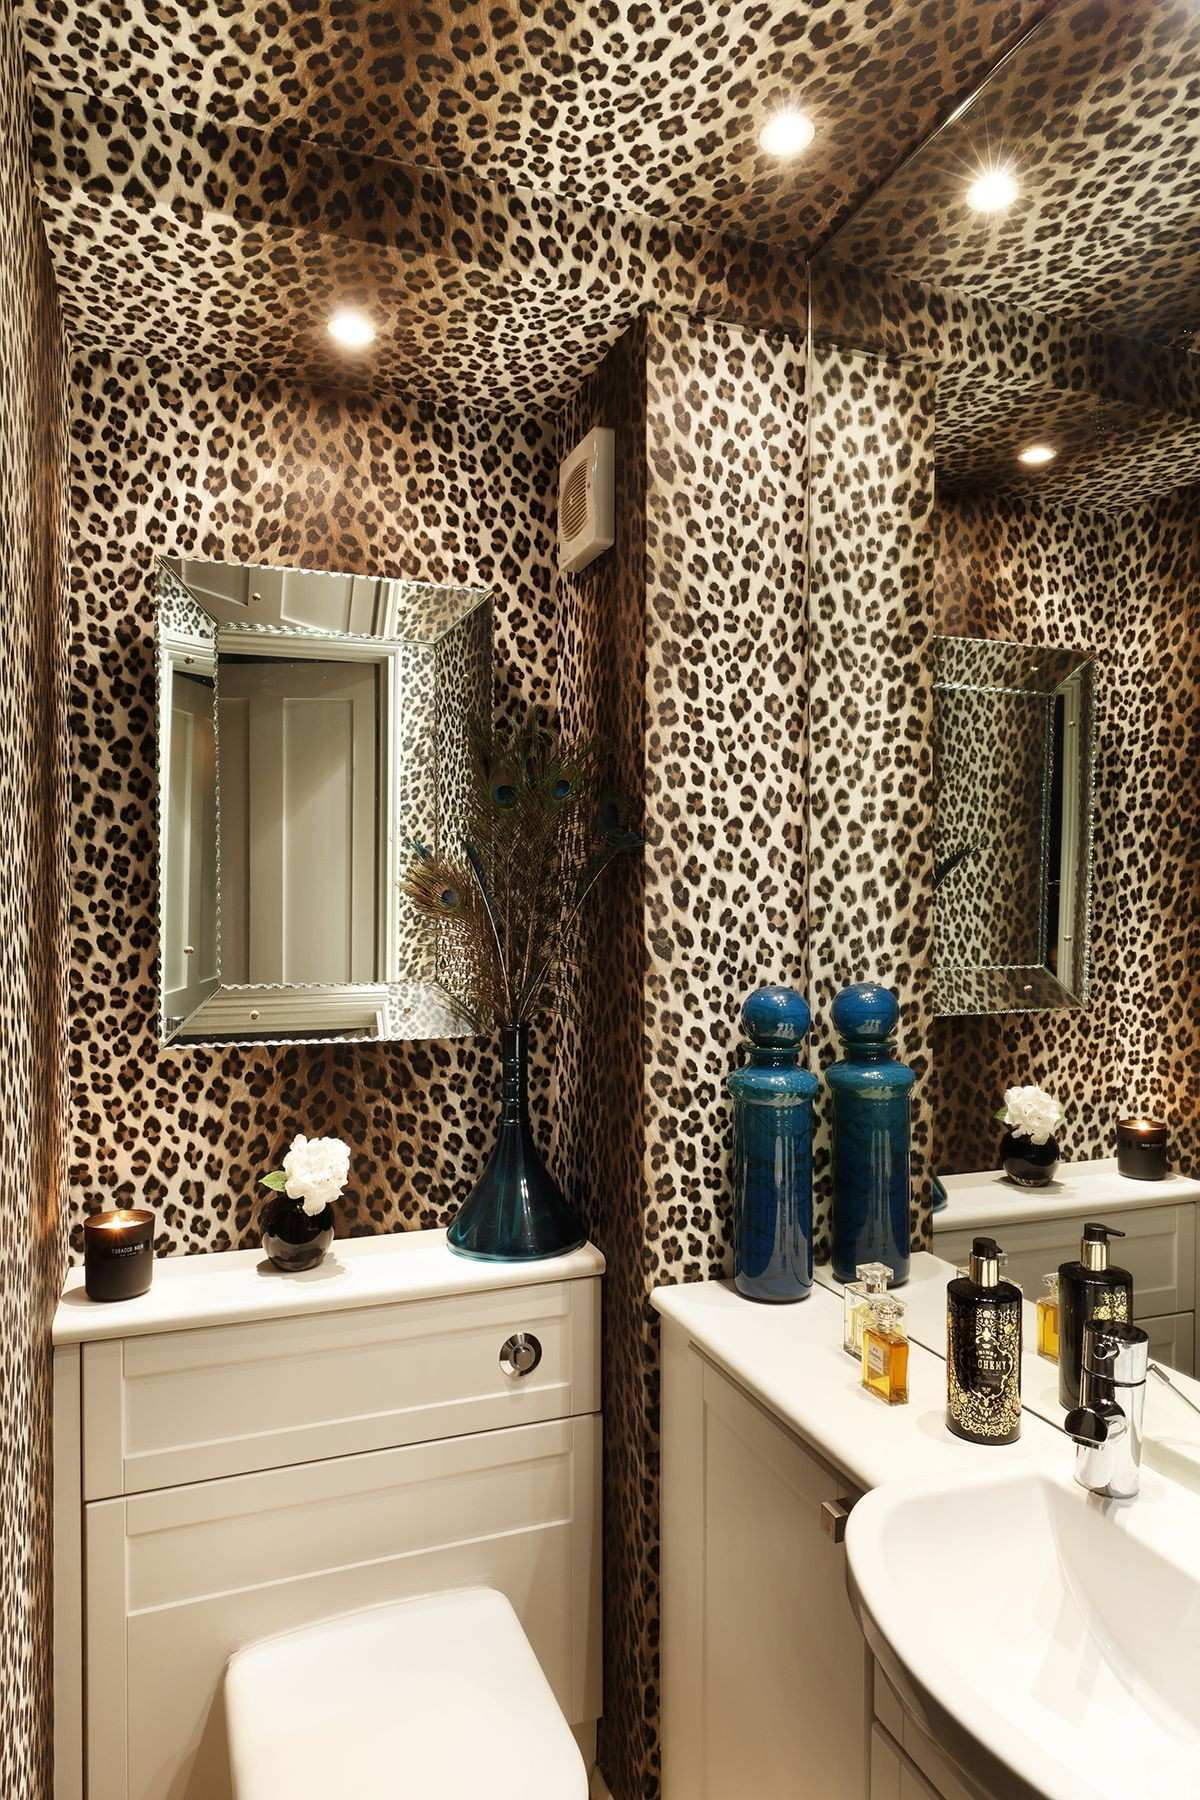 The gold and brown colours in the leopard print wallpaper are